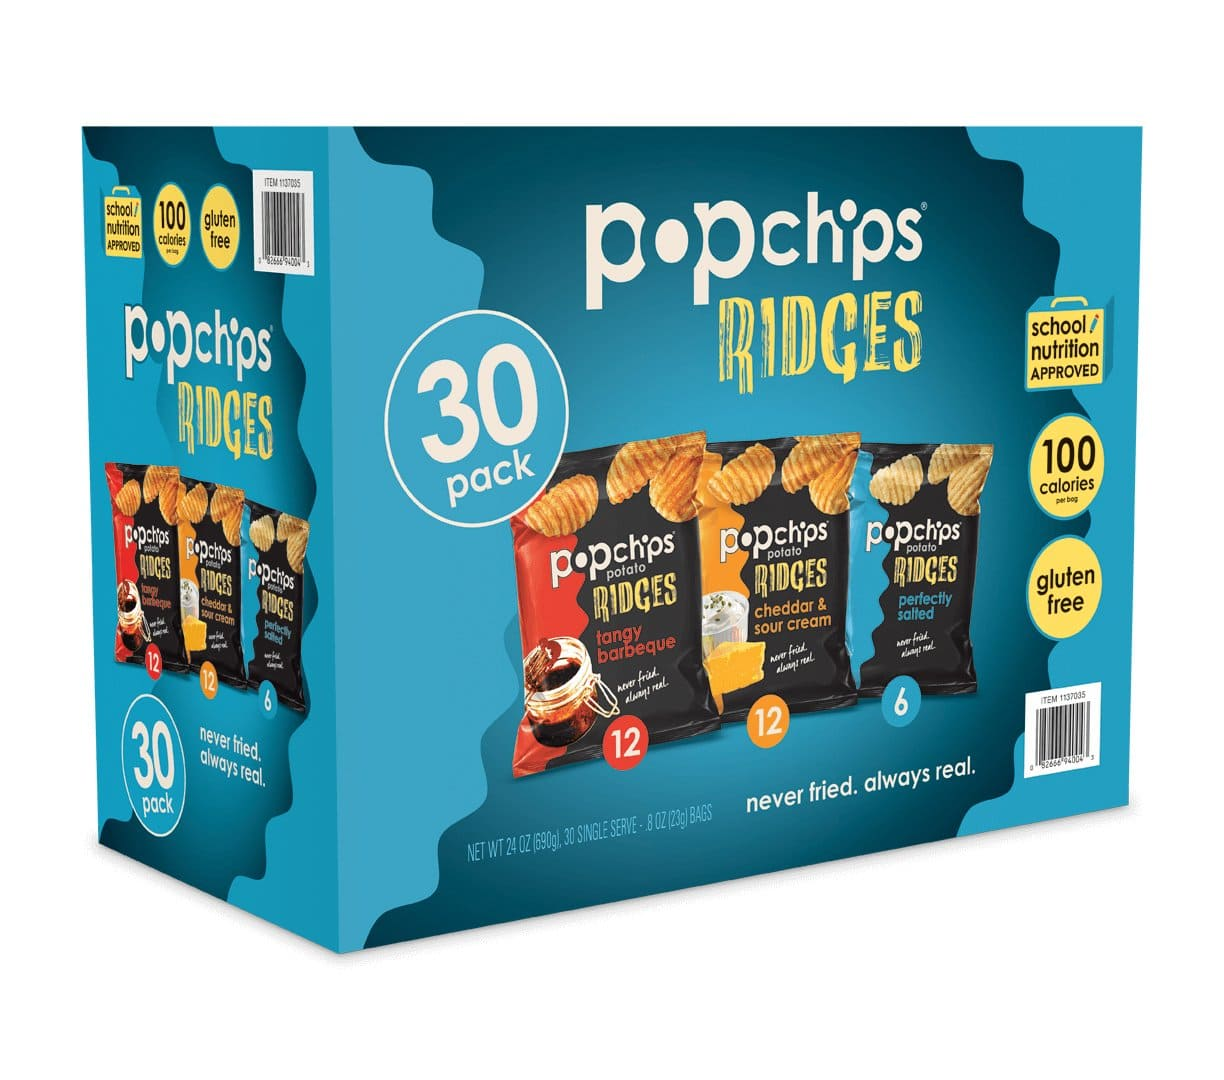 Popchips Ridges Potato Chips Variety Pack Single Serve 0.8 oz Bags (Pack of 30) 3 Flavors $8.41 with s/s